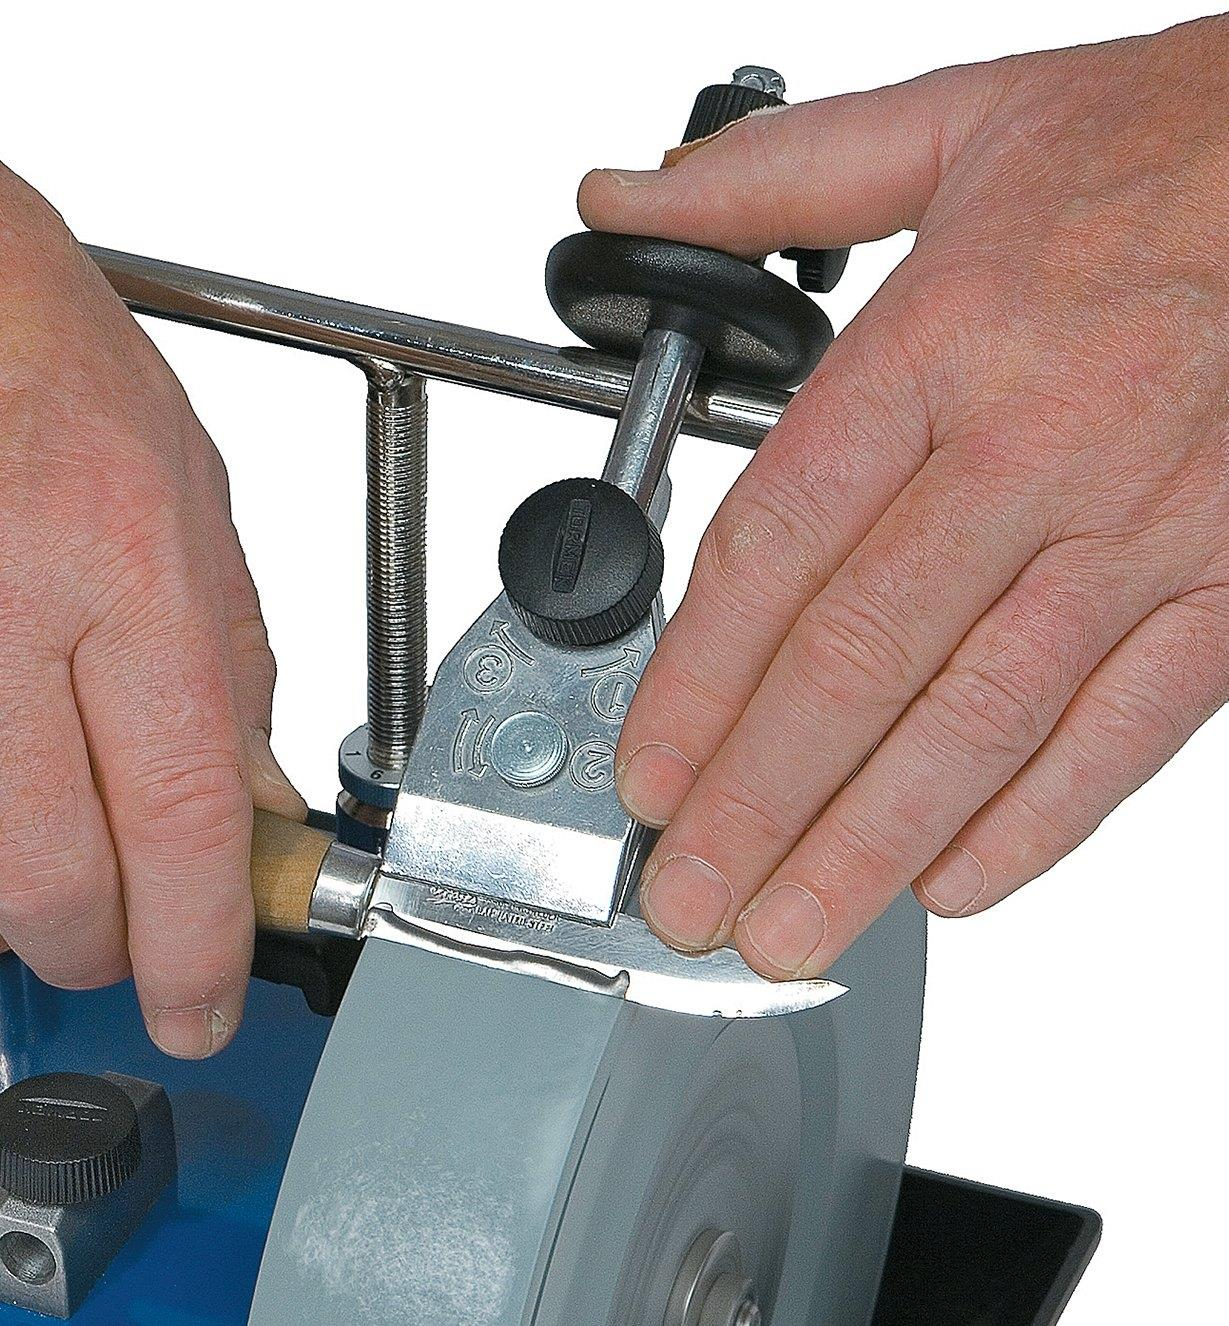 Sharpening a knife using the Tormek Small Knife Jig